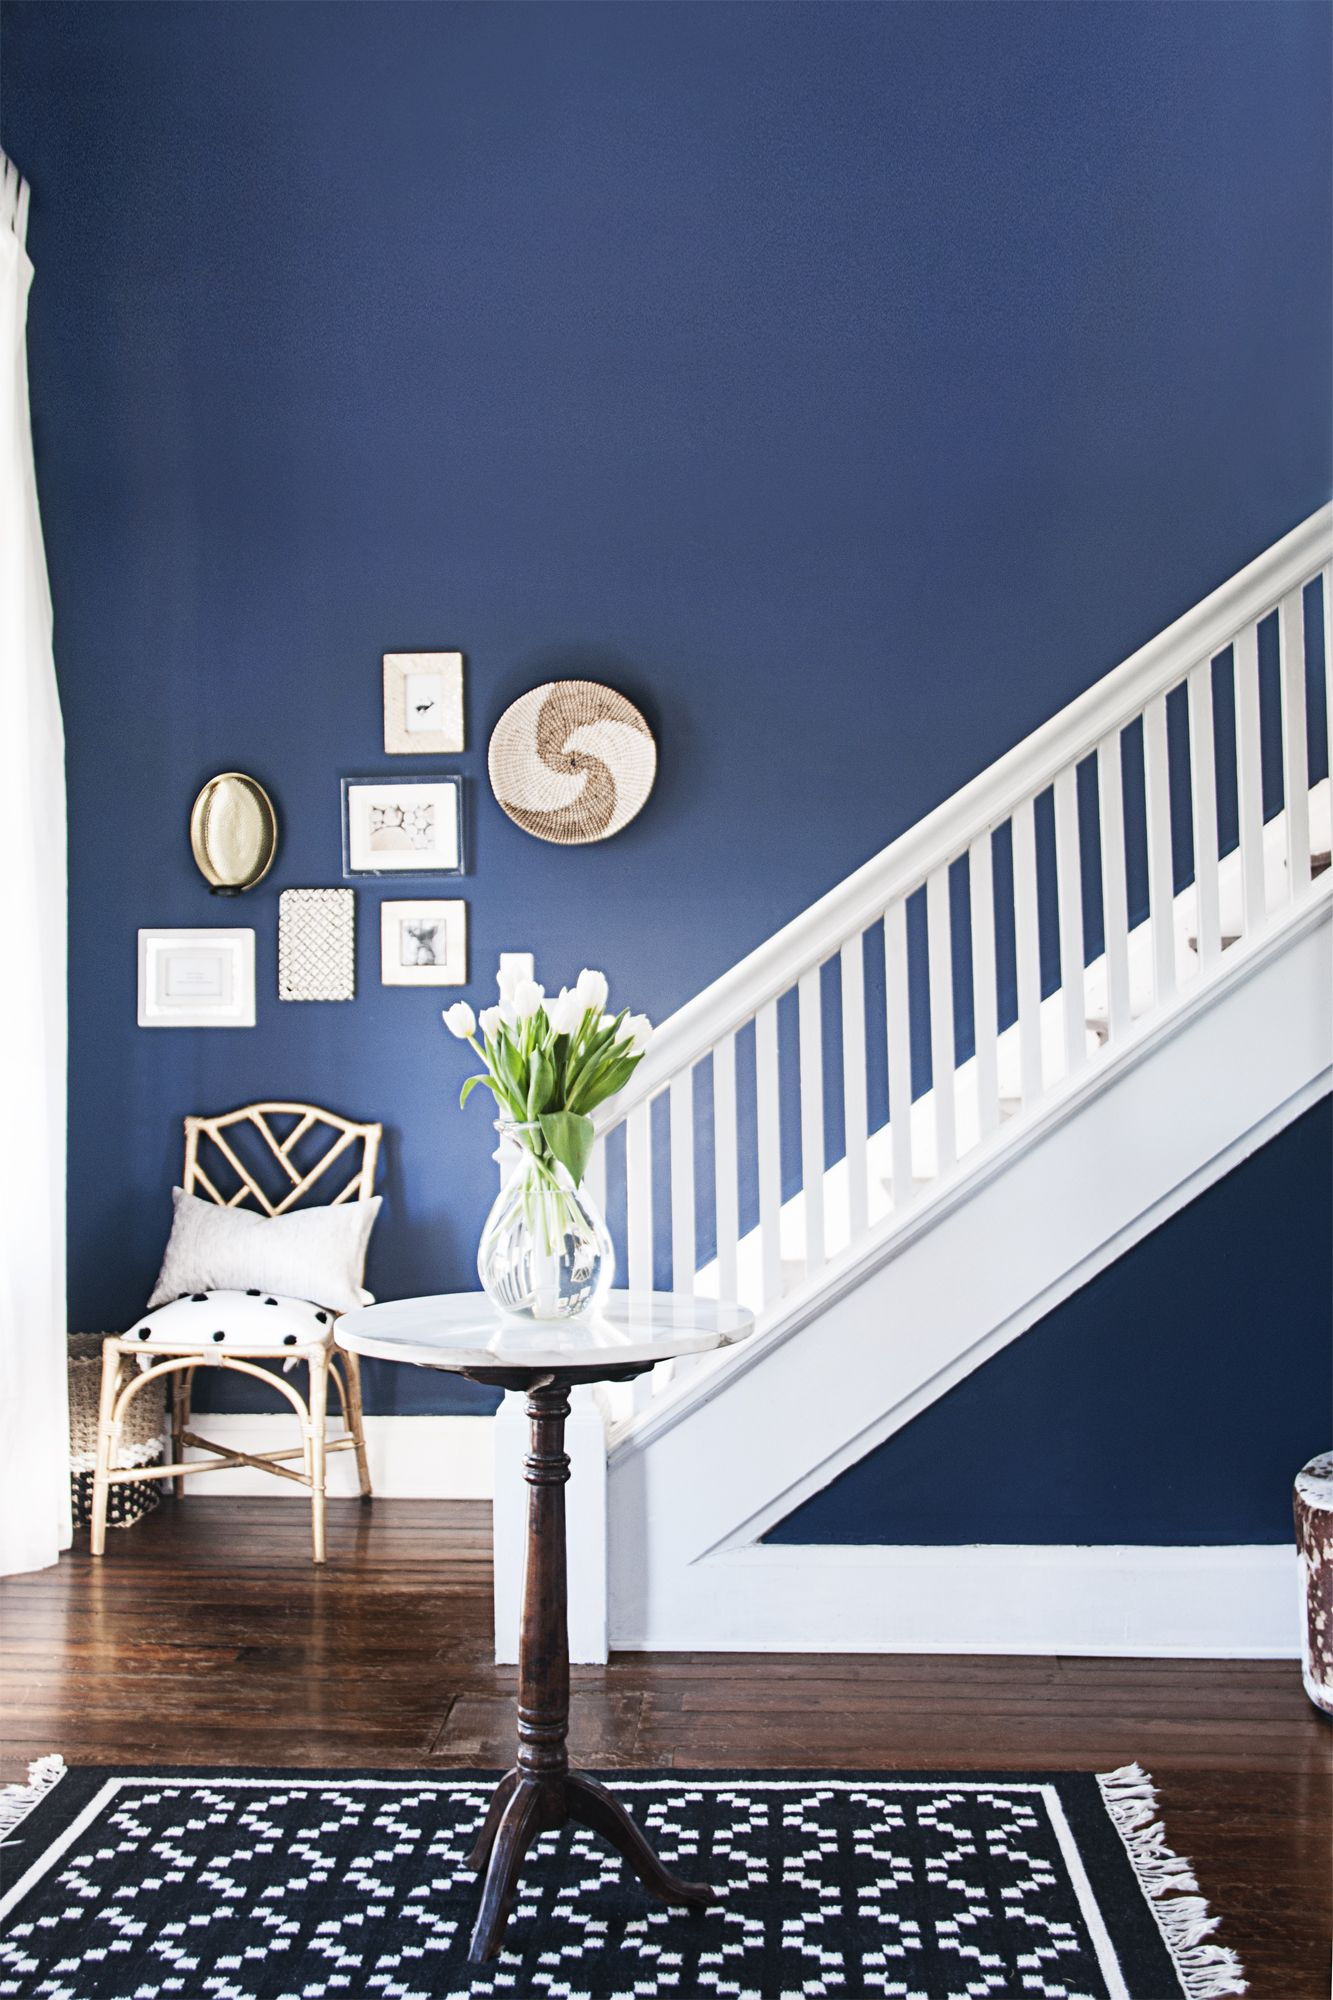 12 Best Interior Paint Colors - Top Wall Color Ideas for Your Home